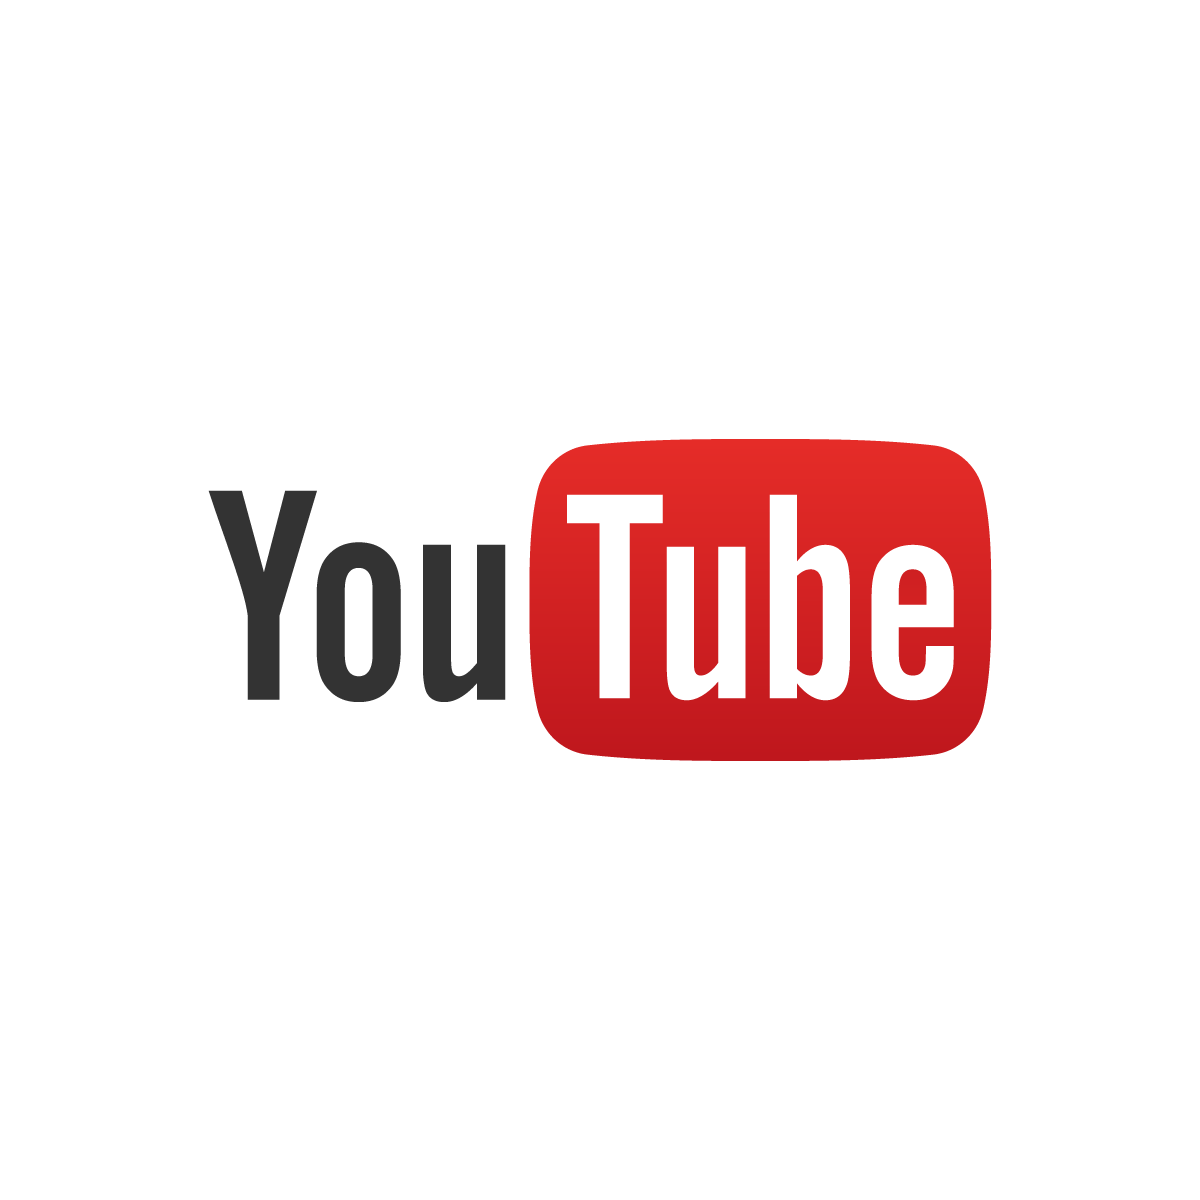 Music youtube free 80 -  Music Youtube Free 80 14 Download